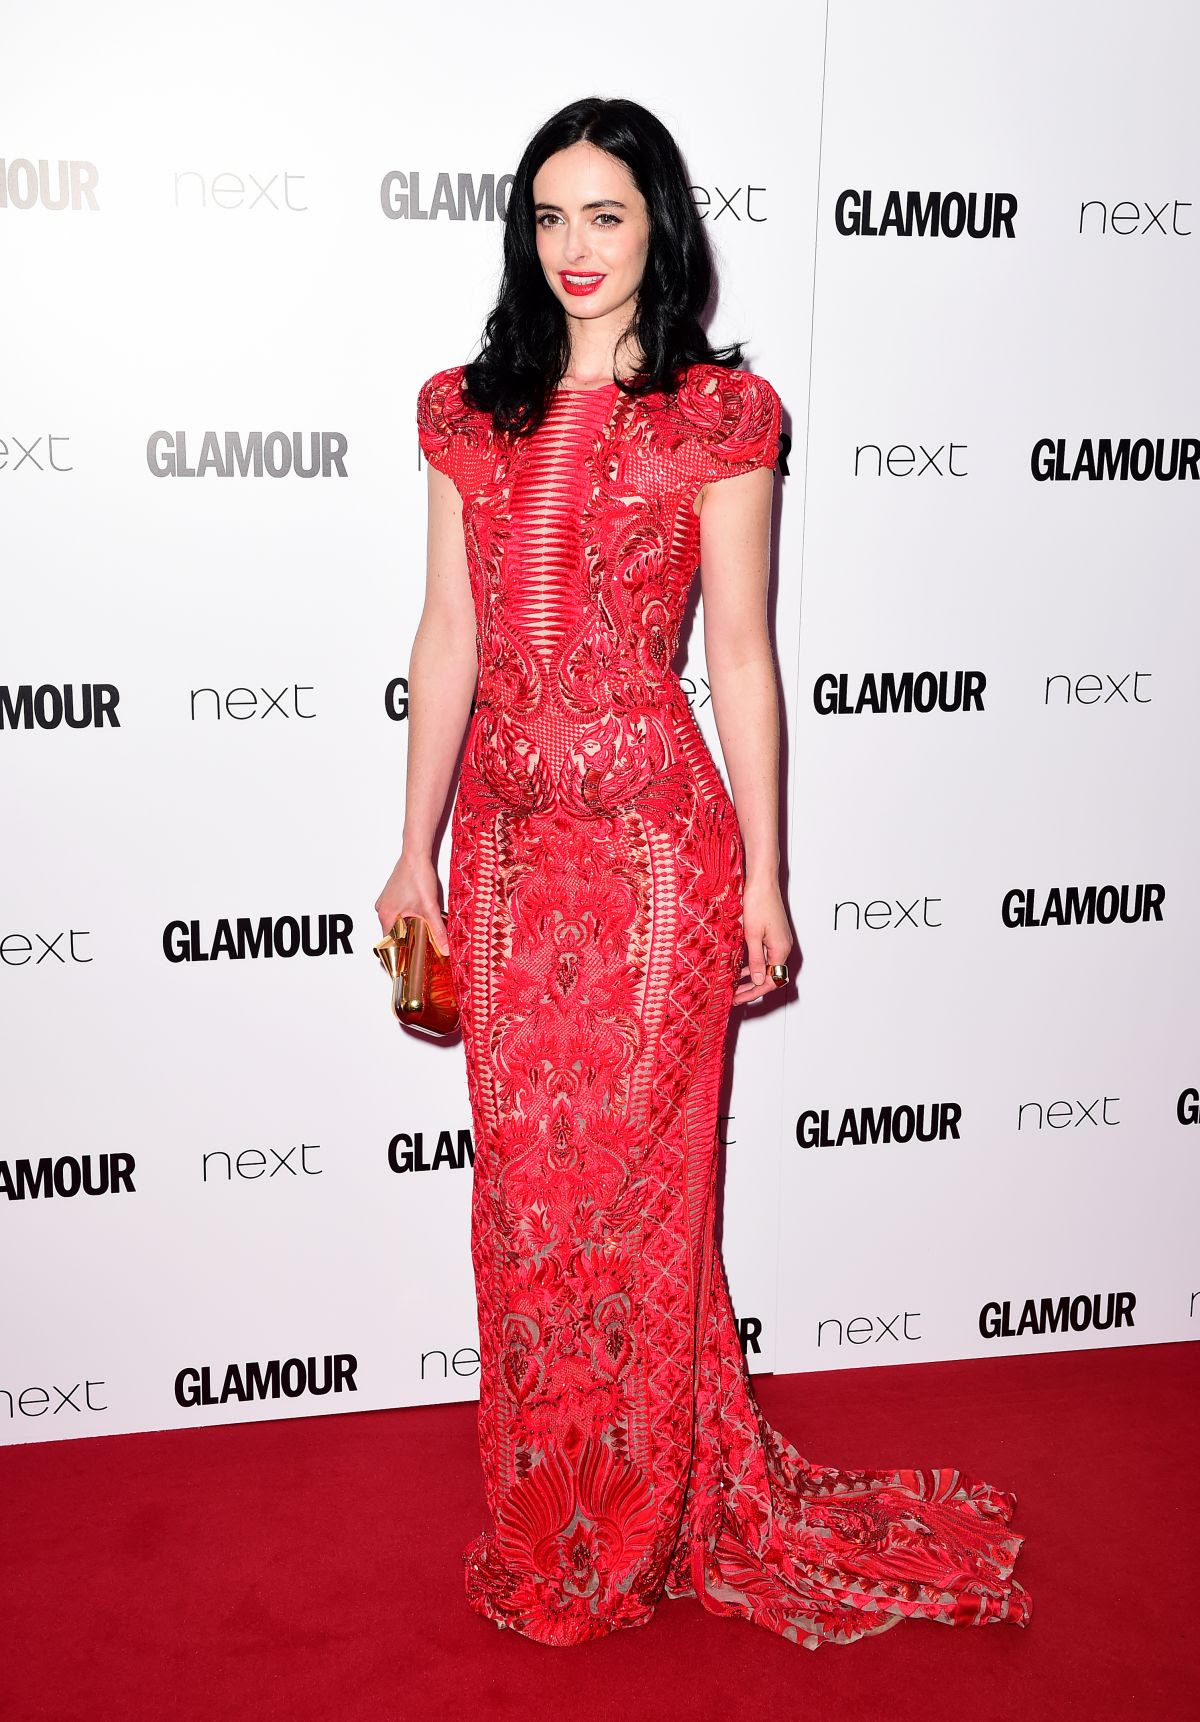 KRYSTEN RITTER at Glamour Women of the Year Awards 2016 in London 06/07/2016